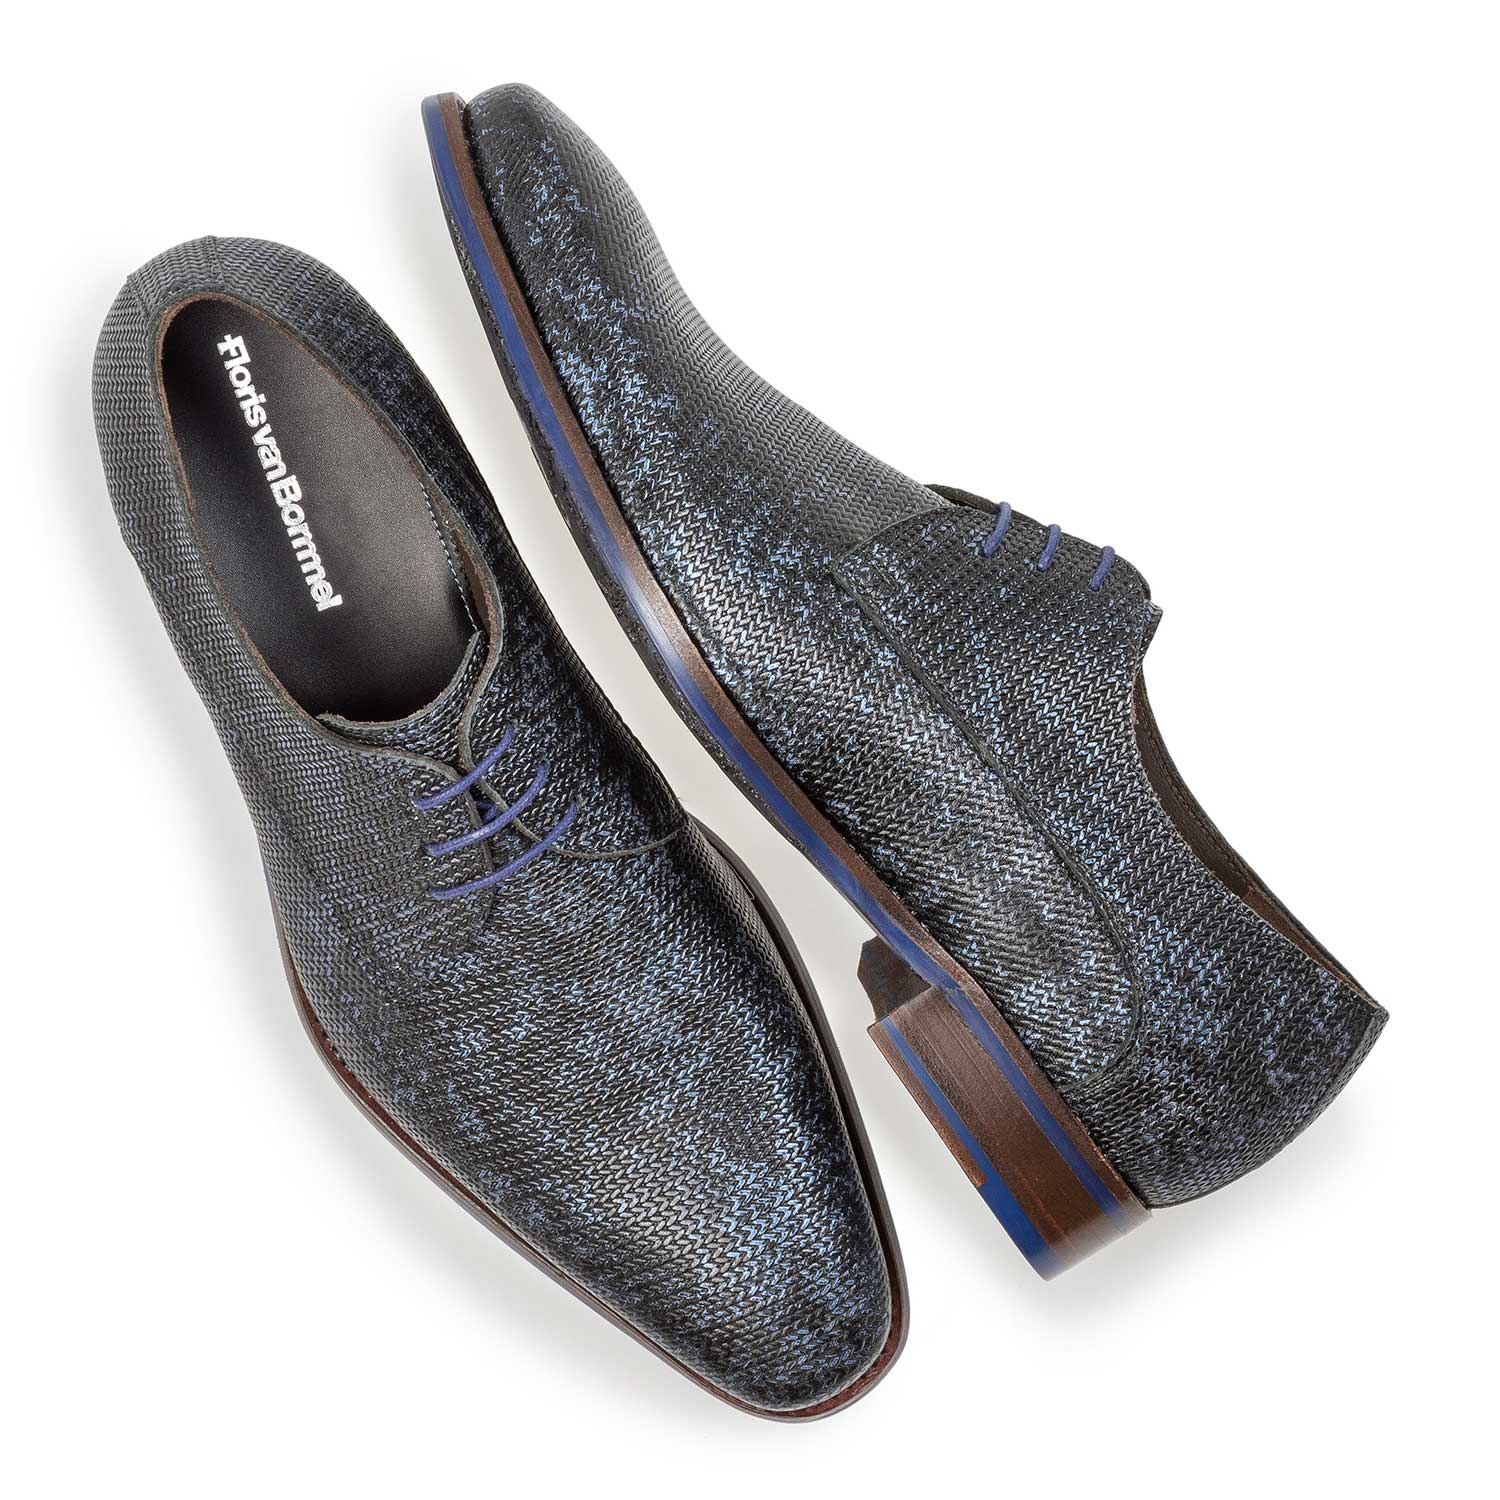 18159/01 - Dark blue leather lace shoe with metallic print